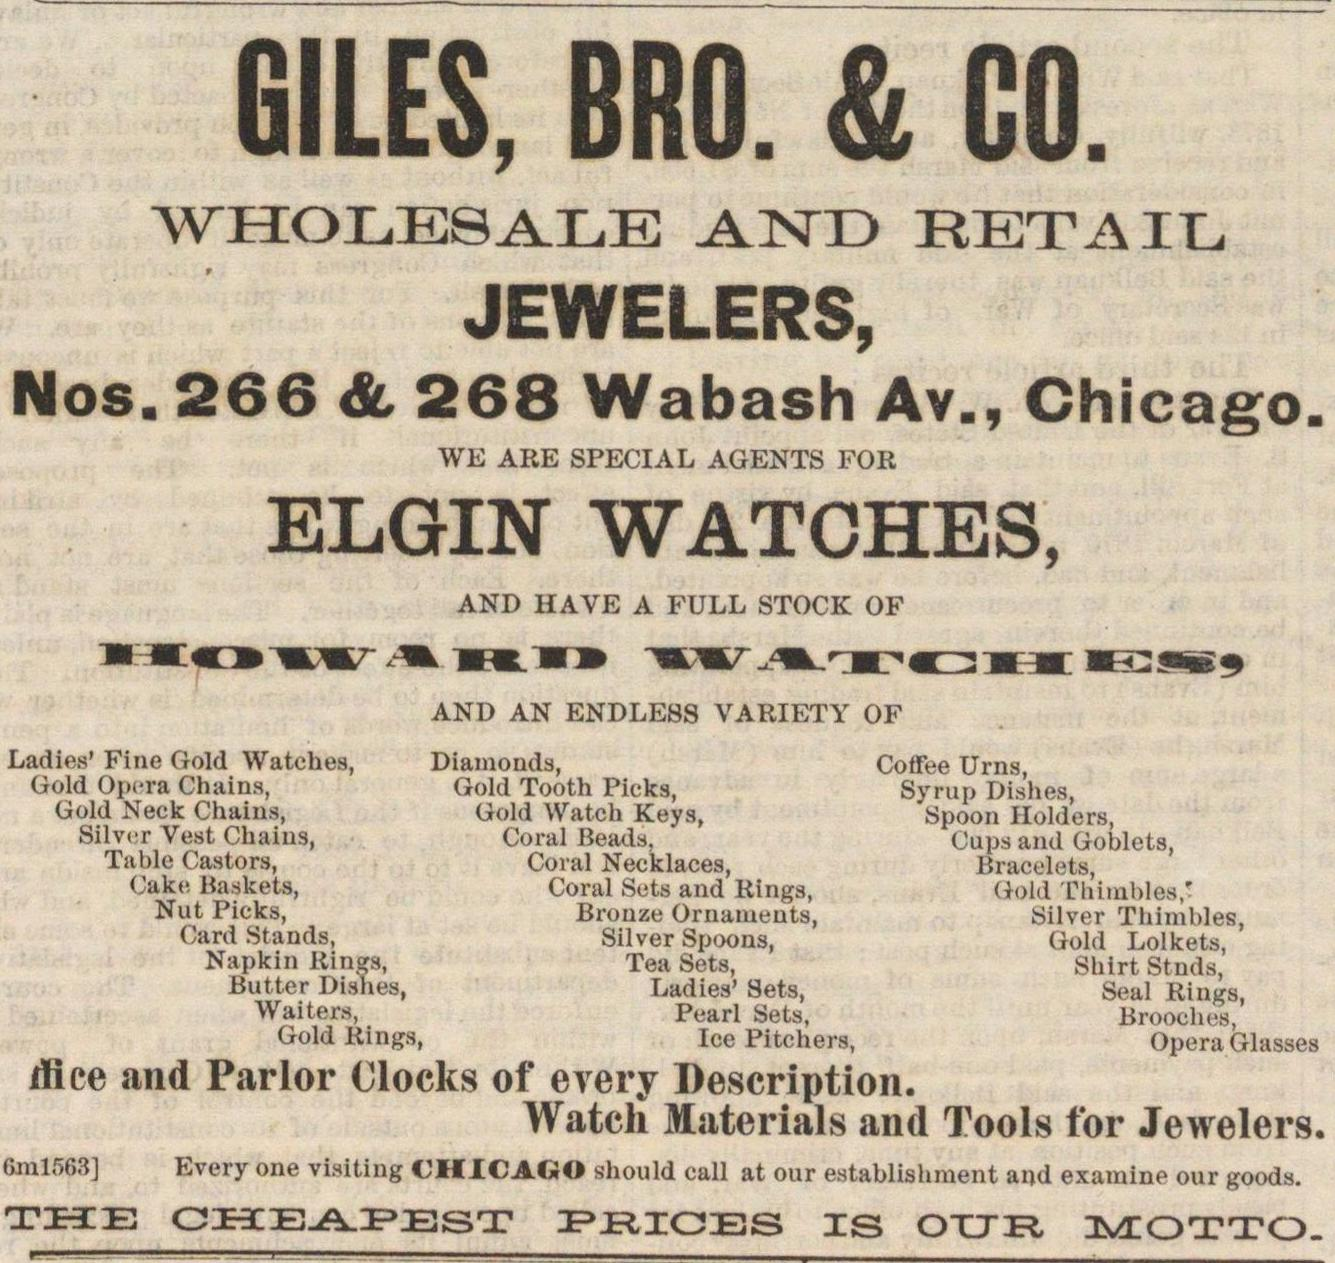 Giles, Bro. & Co. image